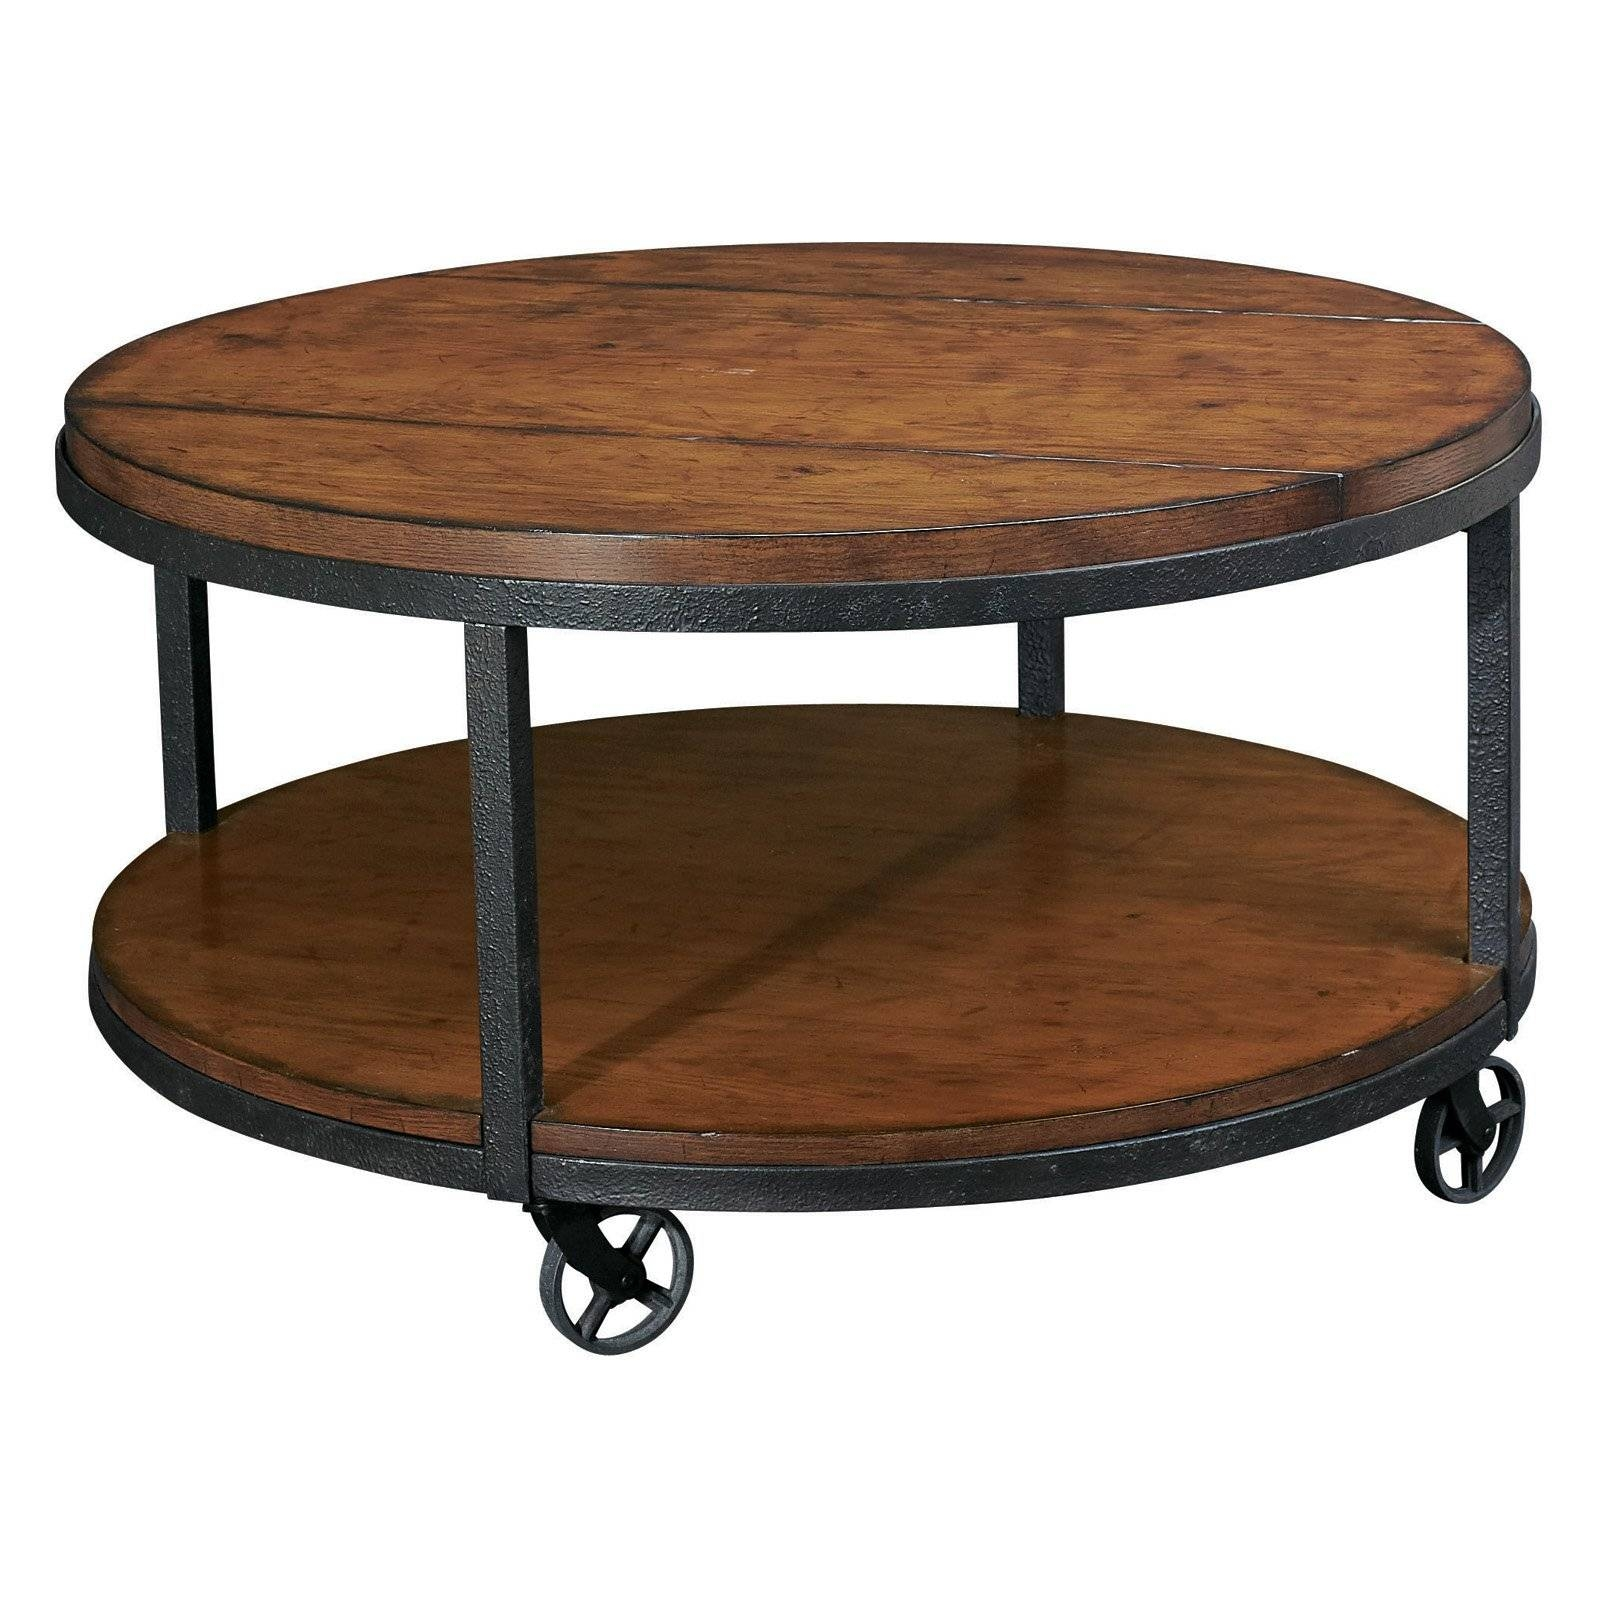 Hammary Baja Round Coffee Table | Hayneedle for Round Coffee Tables (Image 13 of 30)